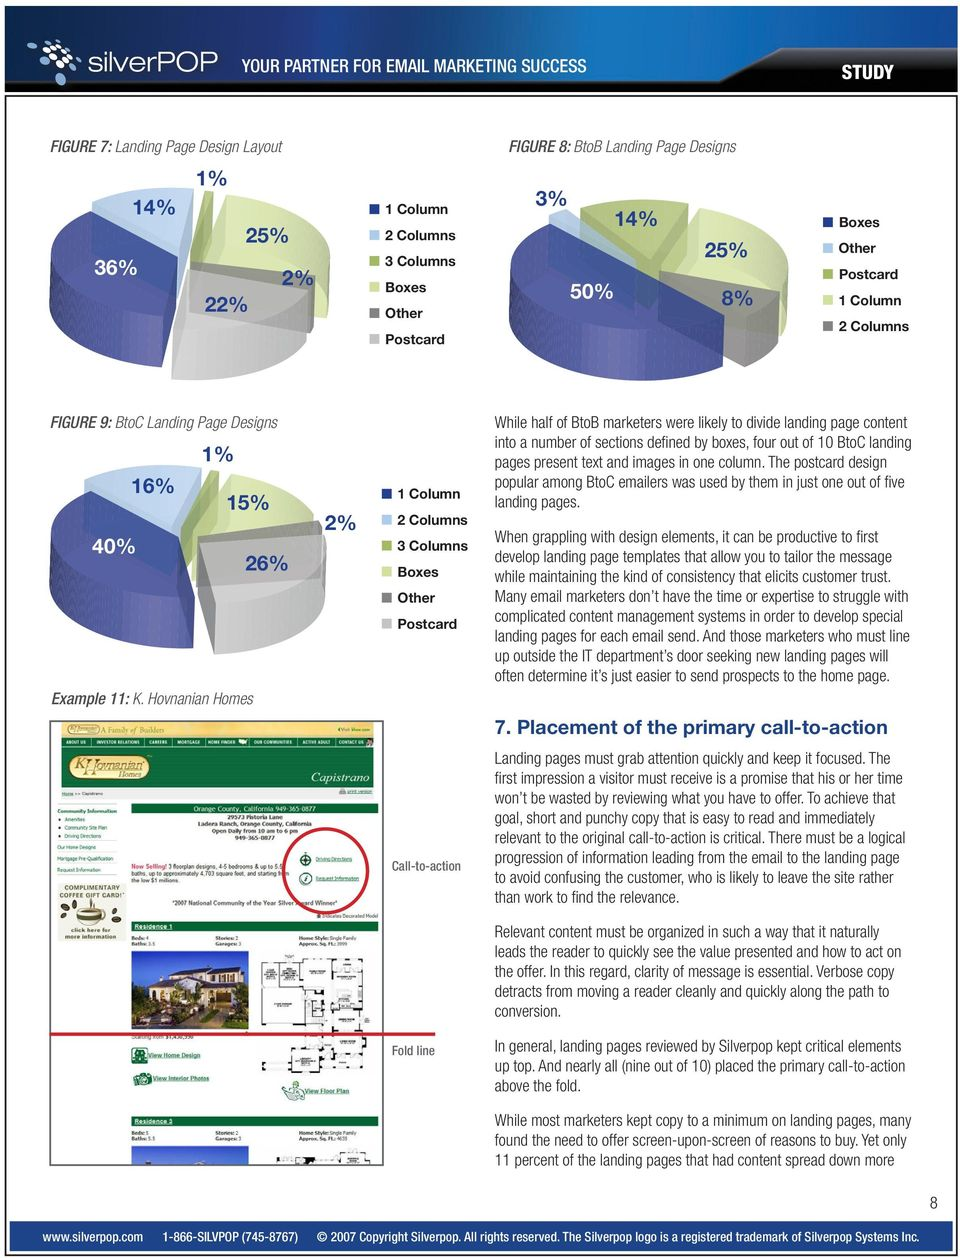 Hovnanian Homes 2% 1 Column 2 Columns 3 Columns Boxes Other Postcard While half of BtoB marketers were likely to divide landing page content into a number of sections defined by boxes, four out of 10